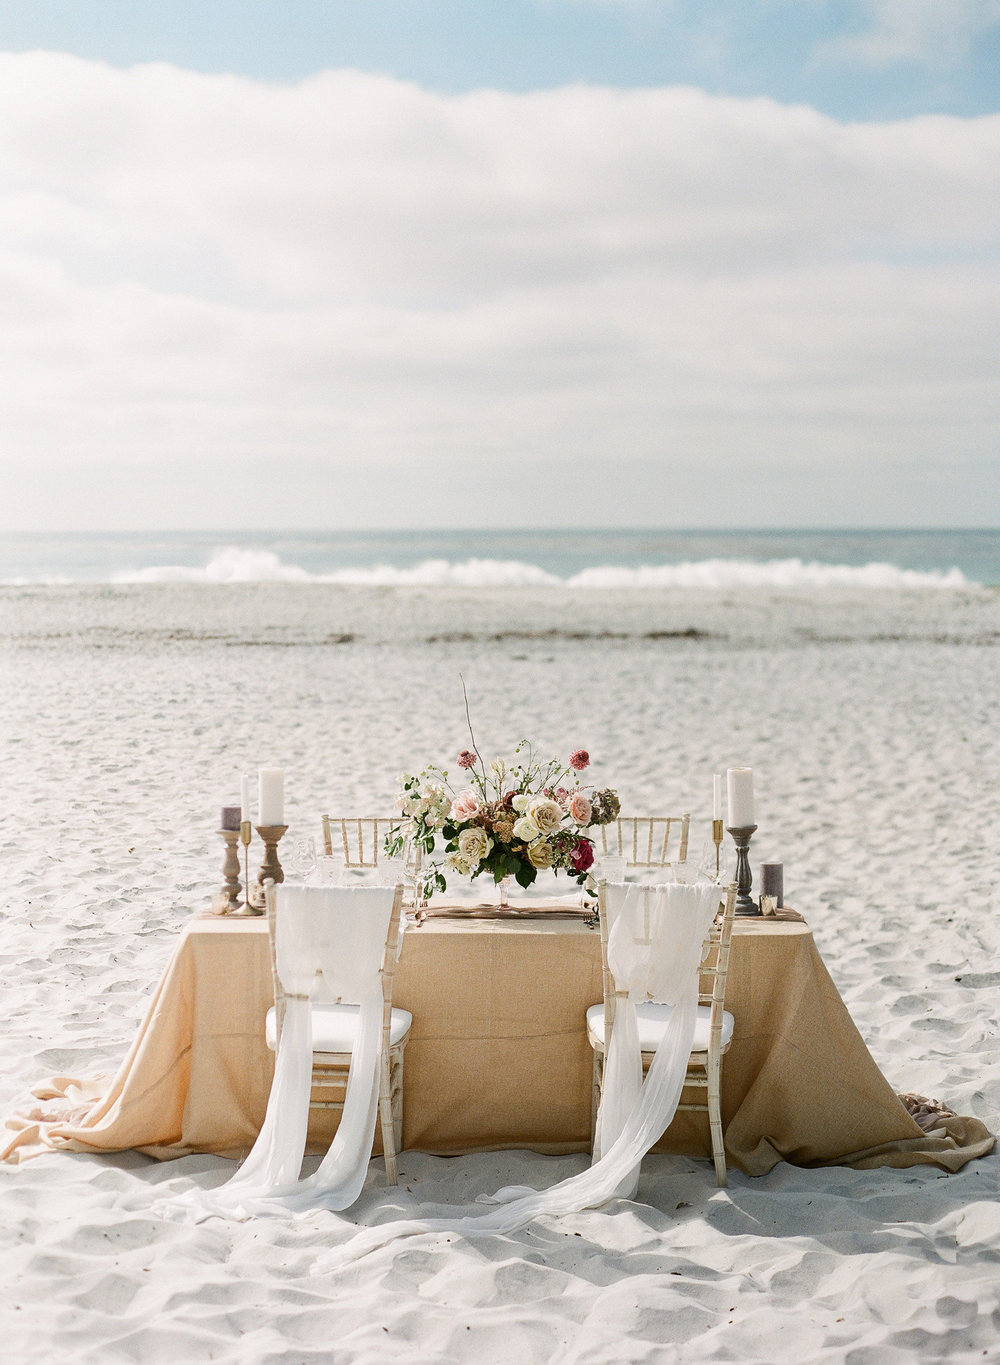 Tablescapes and flower arrangement ideas for beach weddings (Photo: Ashley Noelle Edwards)